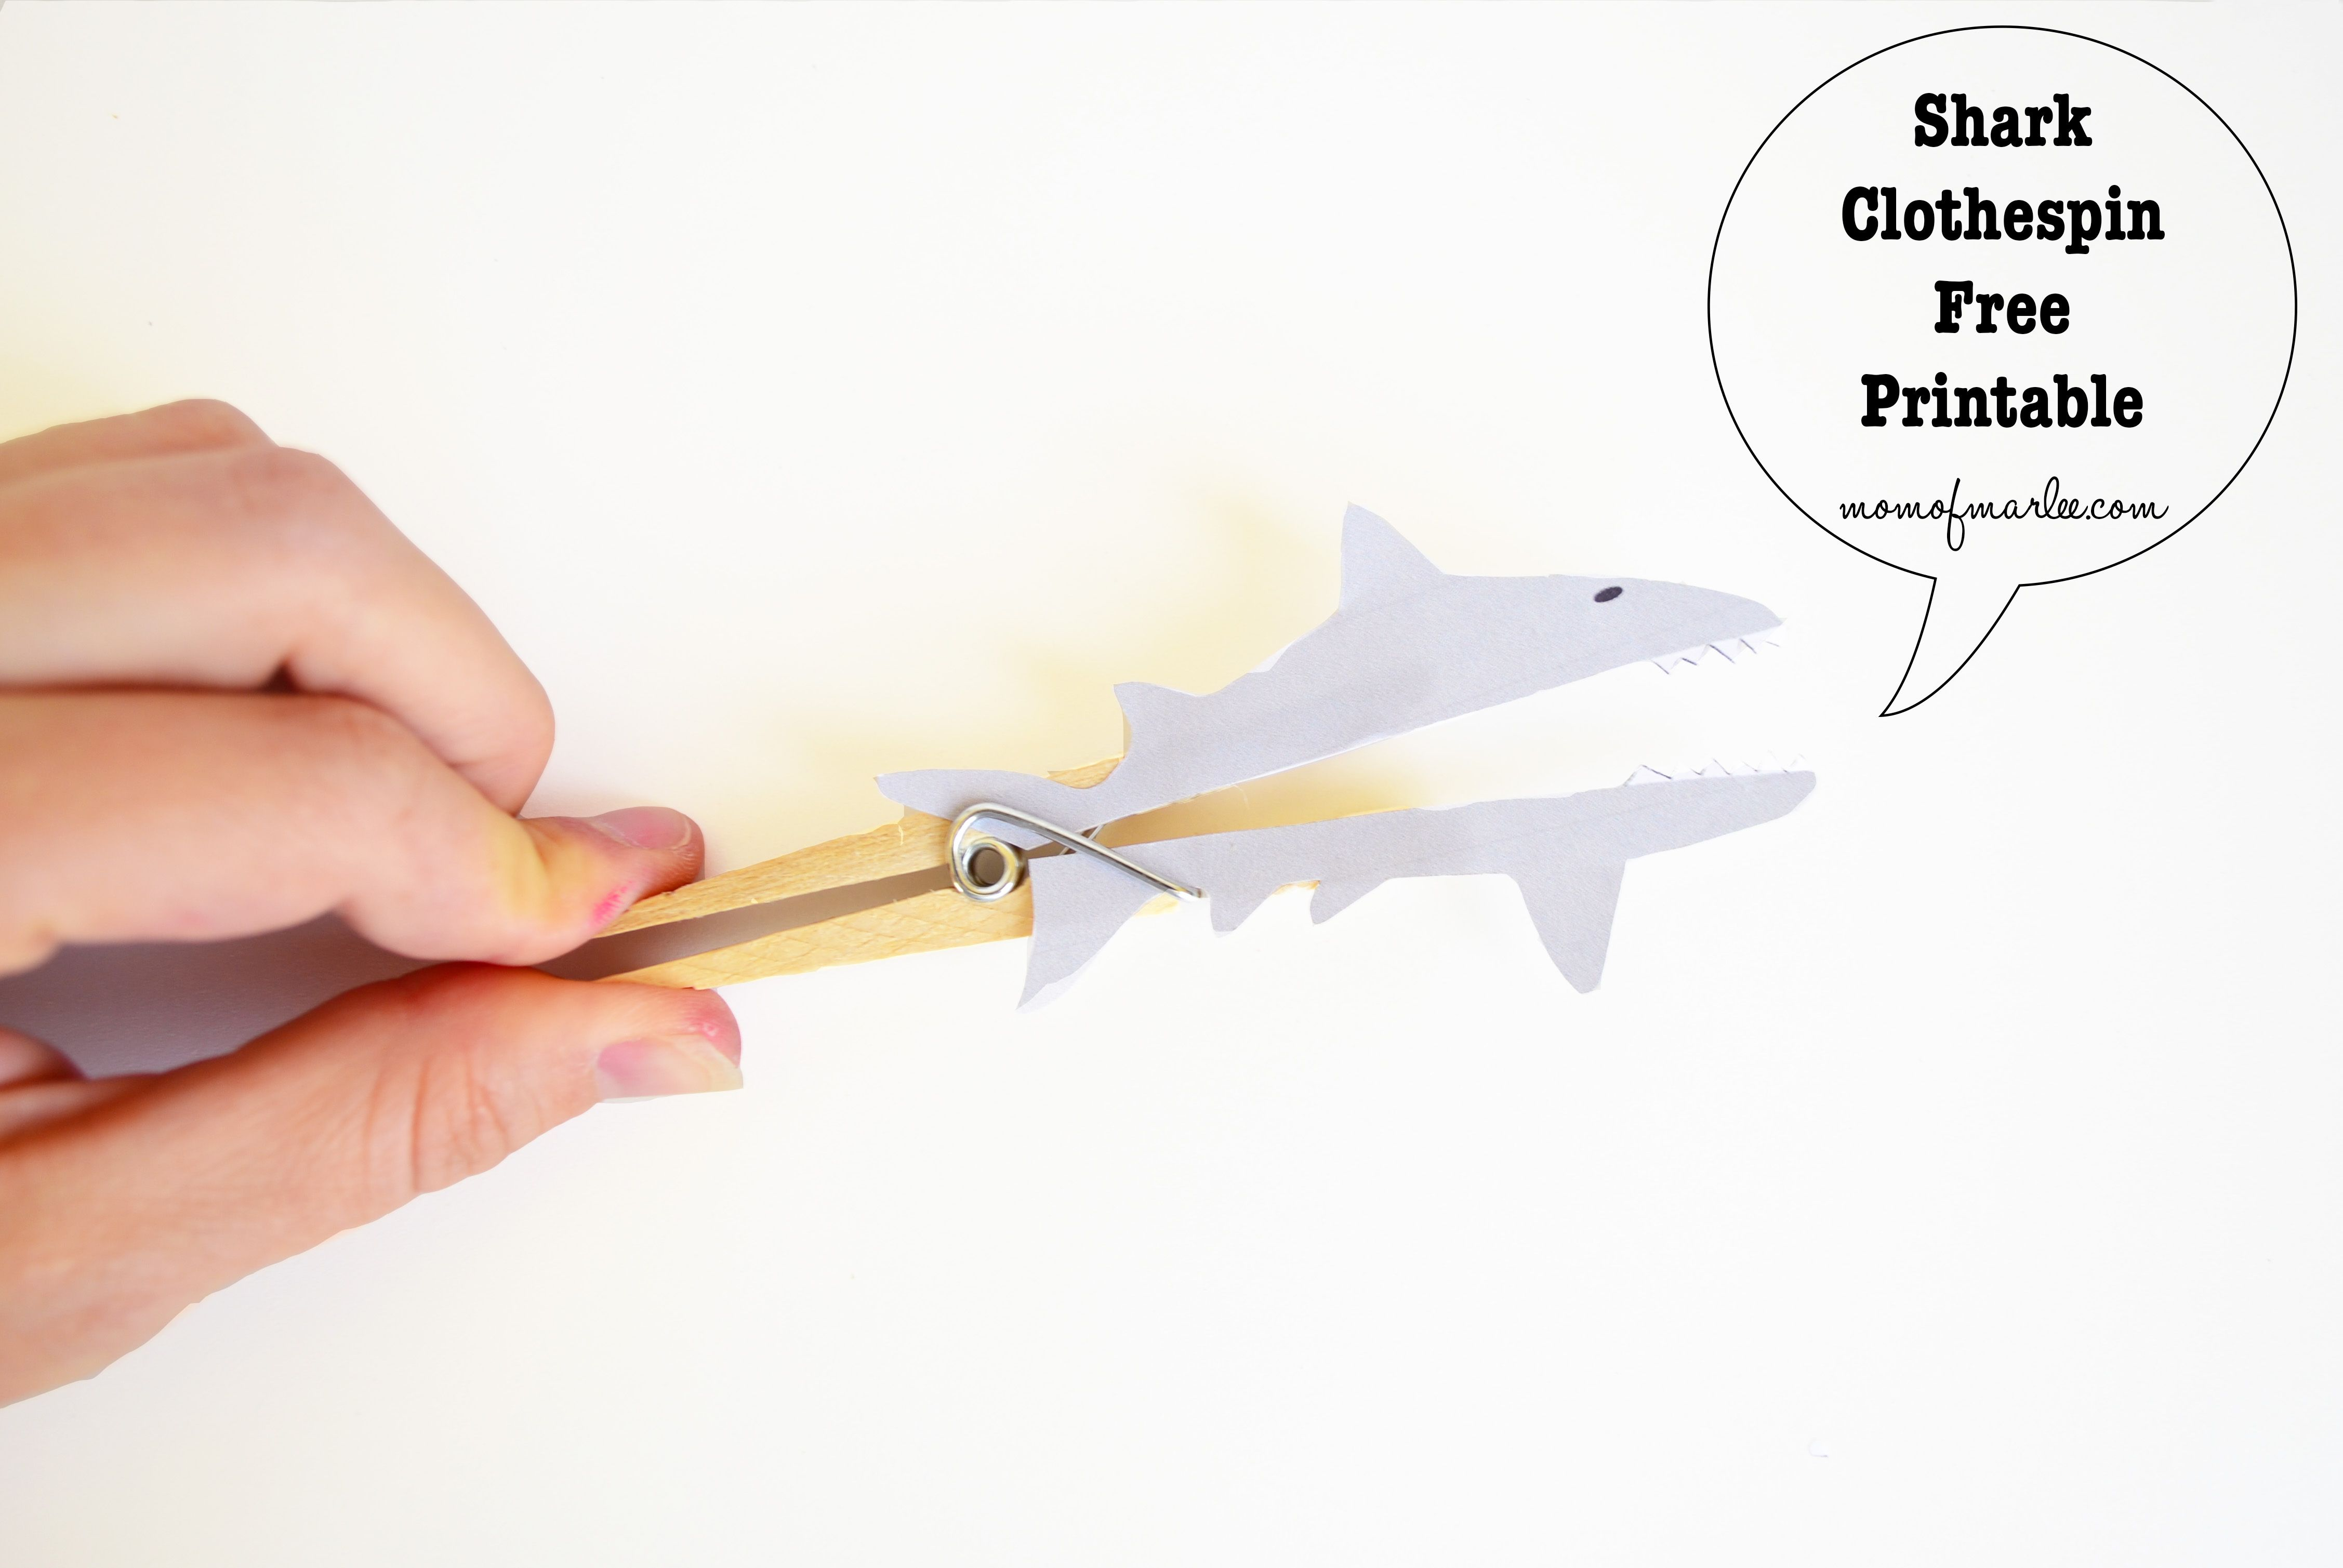 Shark Clothespins Free Printable